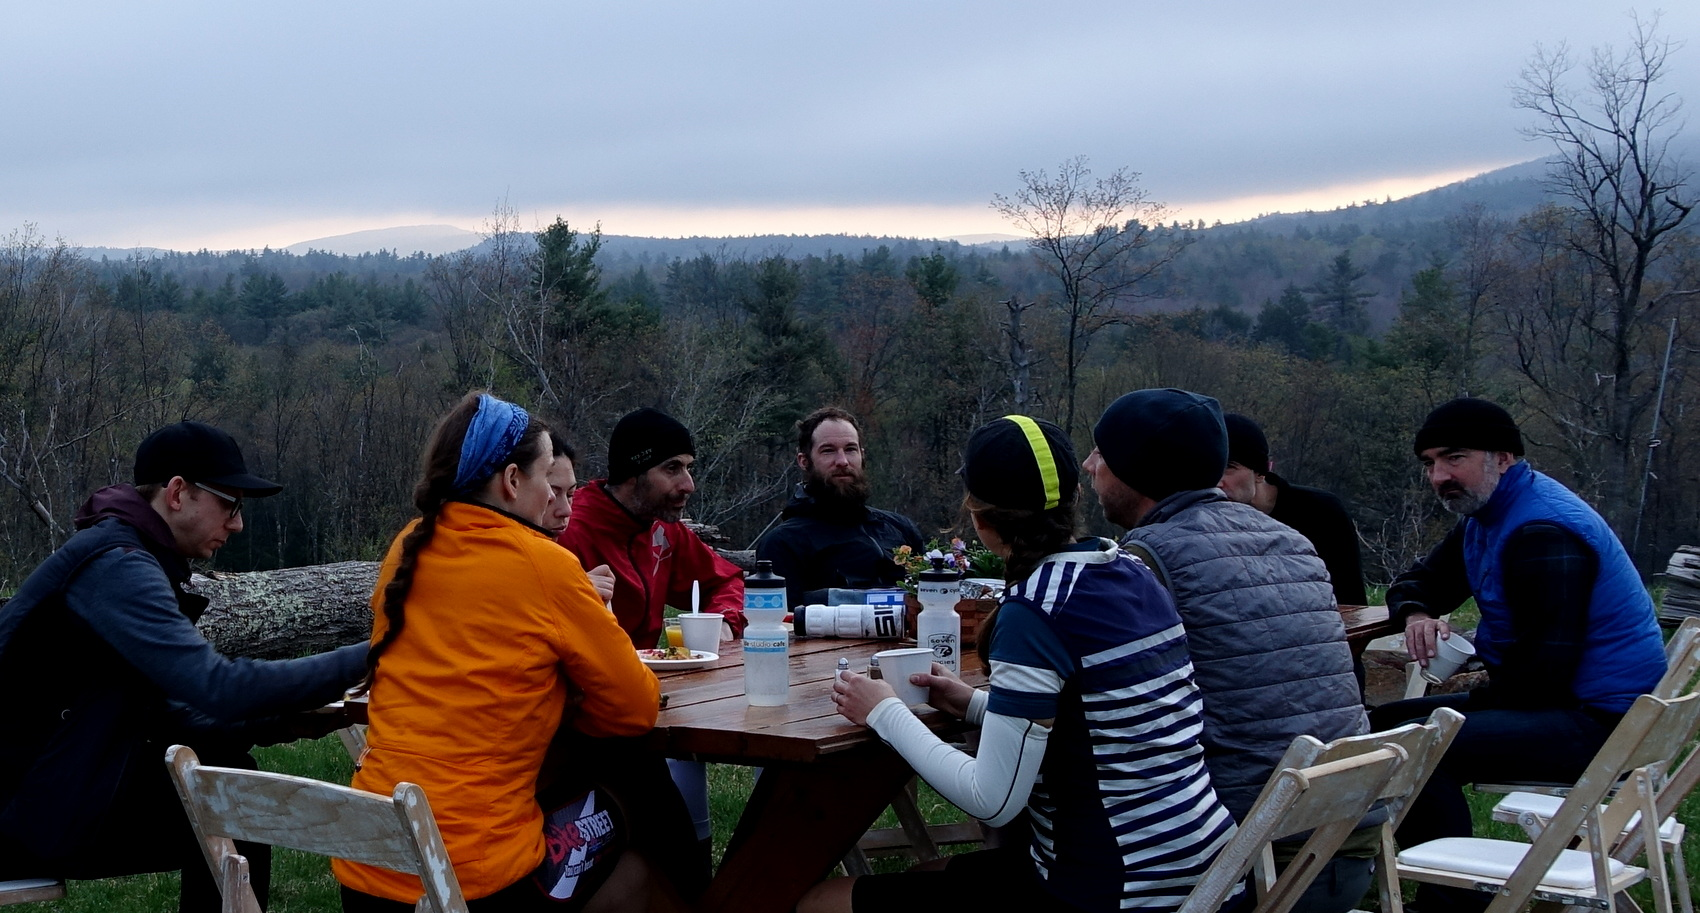 Strategy Before Sunrise : Some of the Manehars discuss the day's plan during the 5:00 am breakfast.